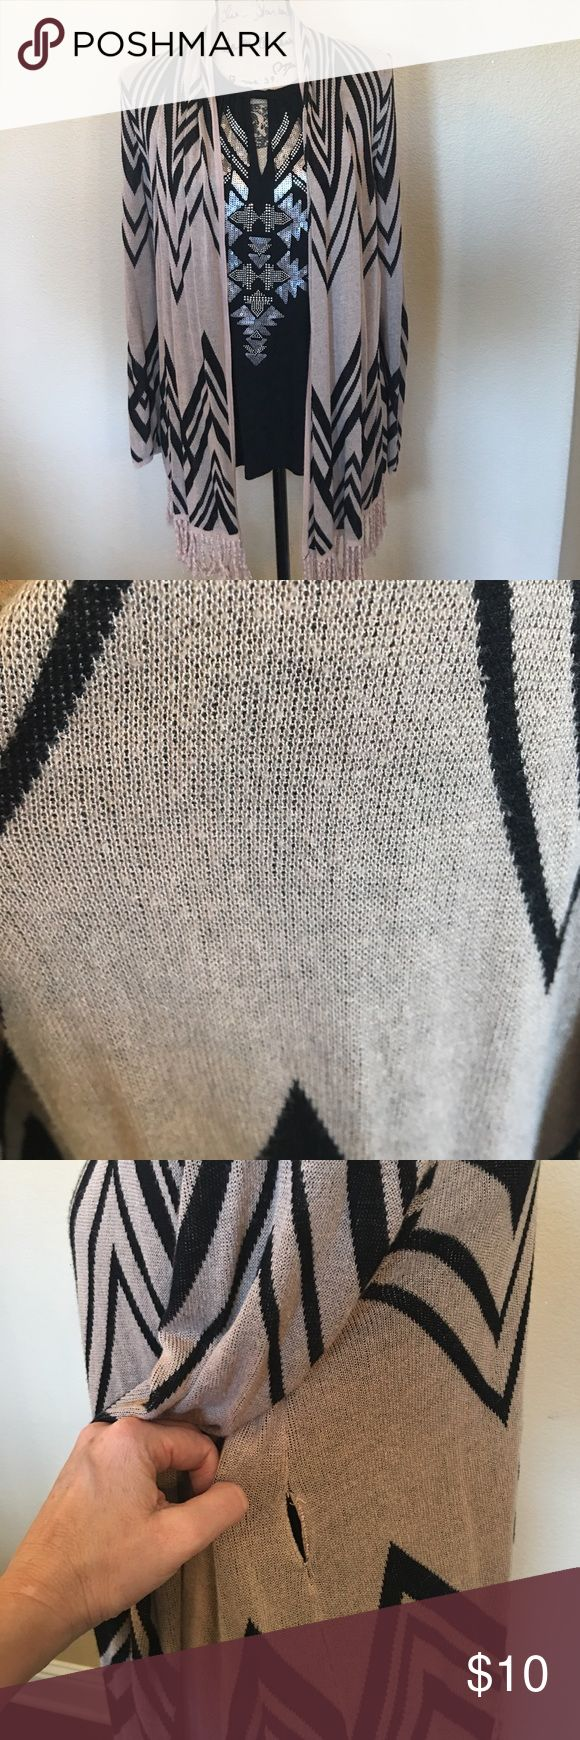 INC knit shrug with fringe Stylish and comfy taupe and black Aztec print long knit shrug with knotted fringe. Some overall pilling on closer inspection so I took pic#2 to illustrate that though it's hard to detect. I disclose everything! Also there's about an 1-1 1/2 inch tear below the underarm seam on the left side.  I'm too lazy to fix it so my price reflects that! Shown on top of black INC tank top sold separately. Smoke free home. Quick shipper. INC International Concepts Sweaters…